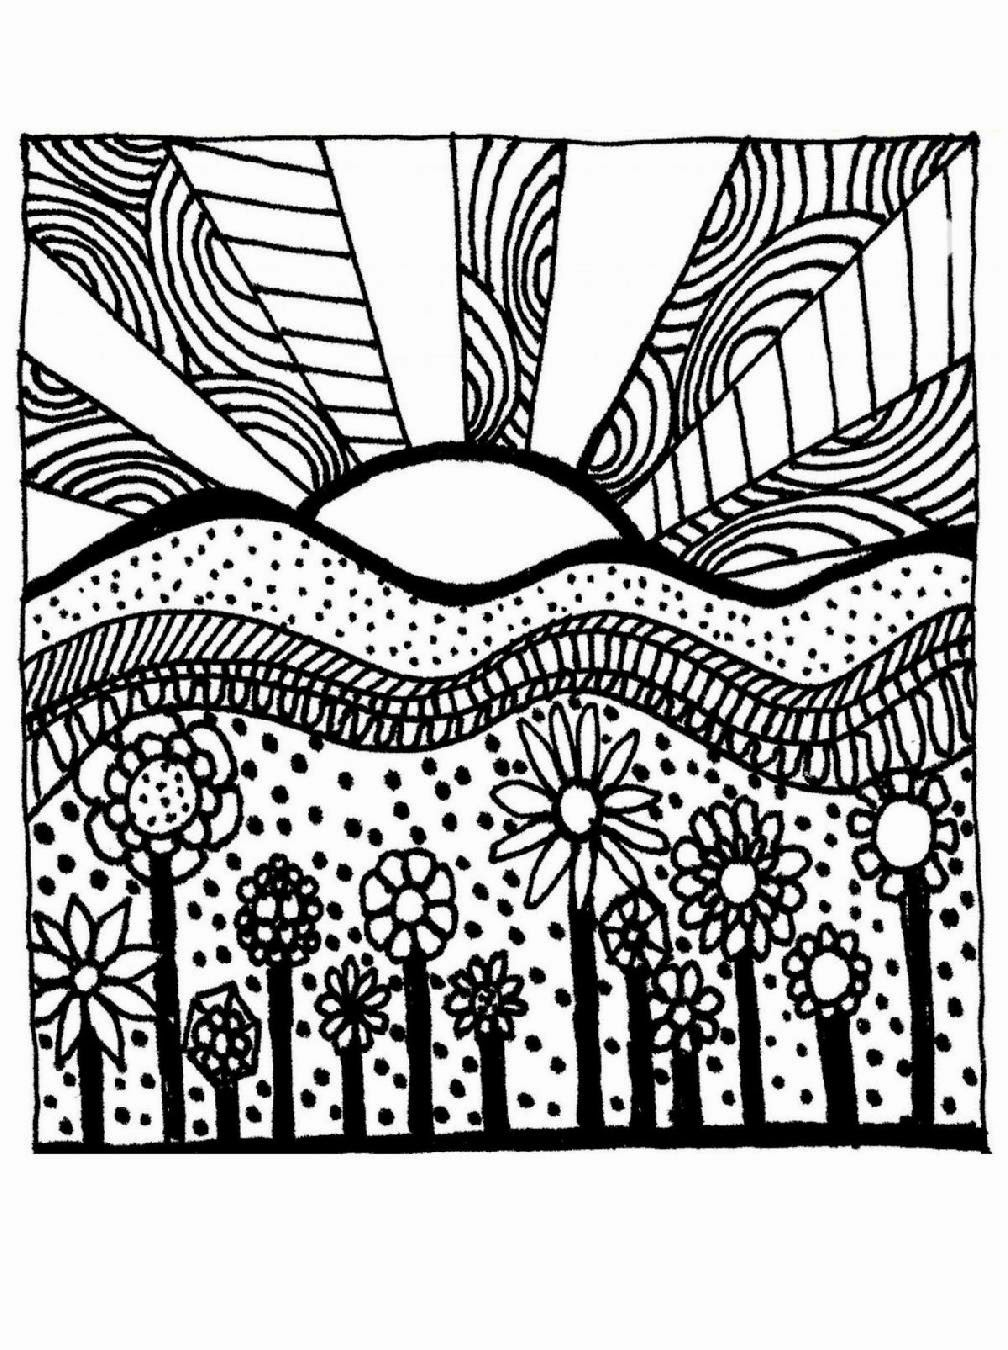 Adult Coloring Sheets | Free Coloring Sheet | free online coloring pages for adults easy